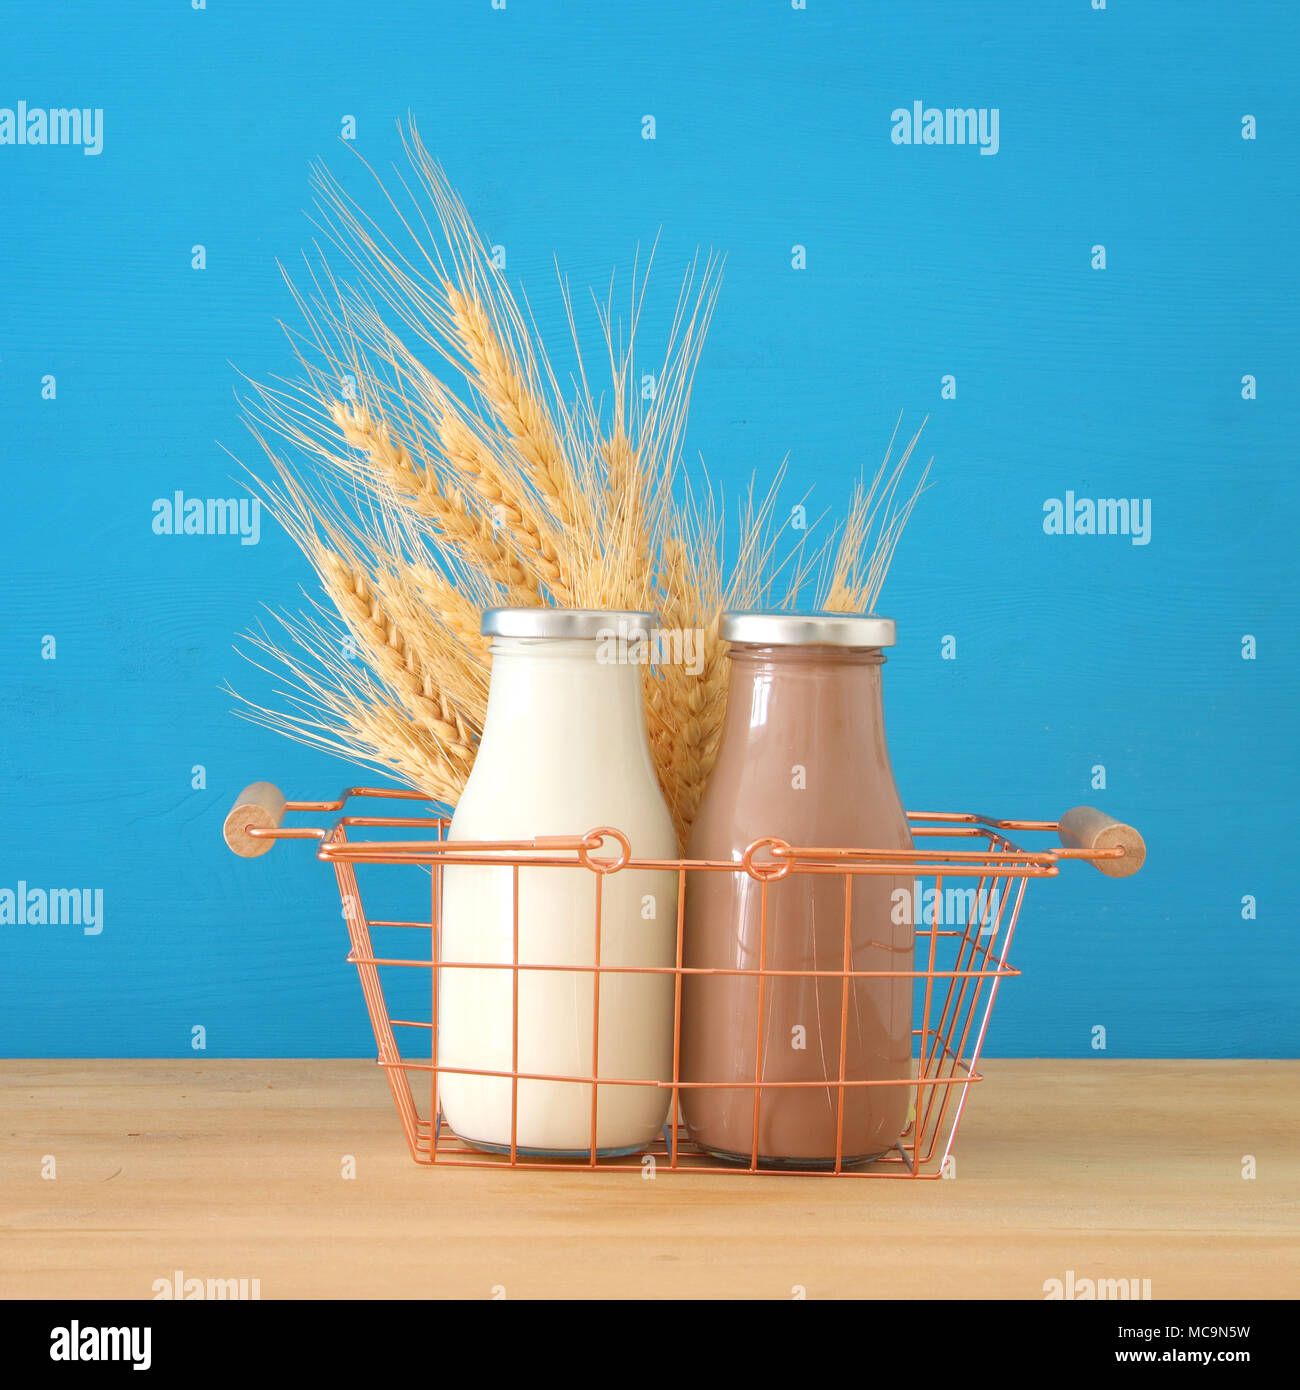 Image Of Milk And Chocolate Over Wooden Table Symbols Of Jewish